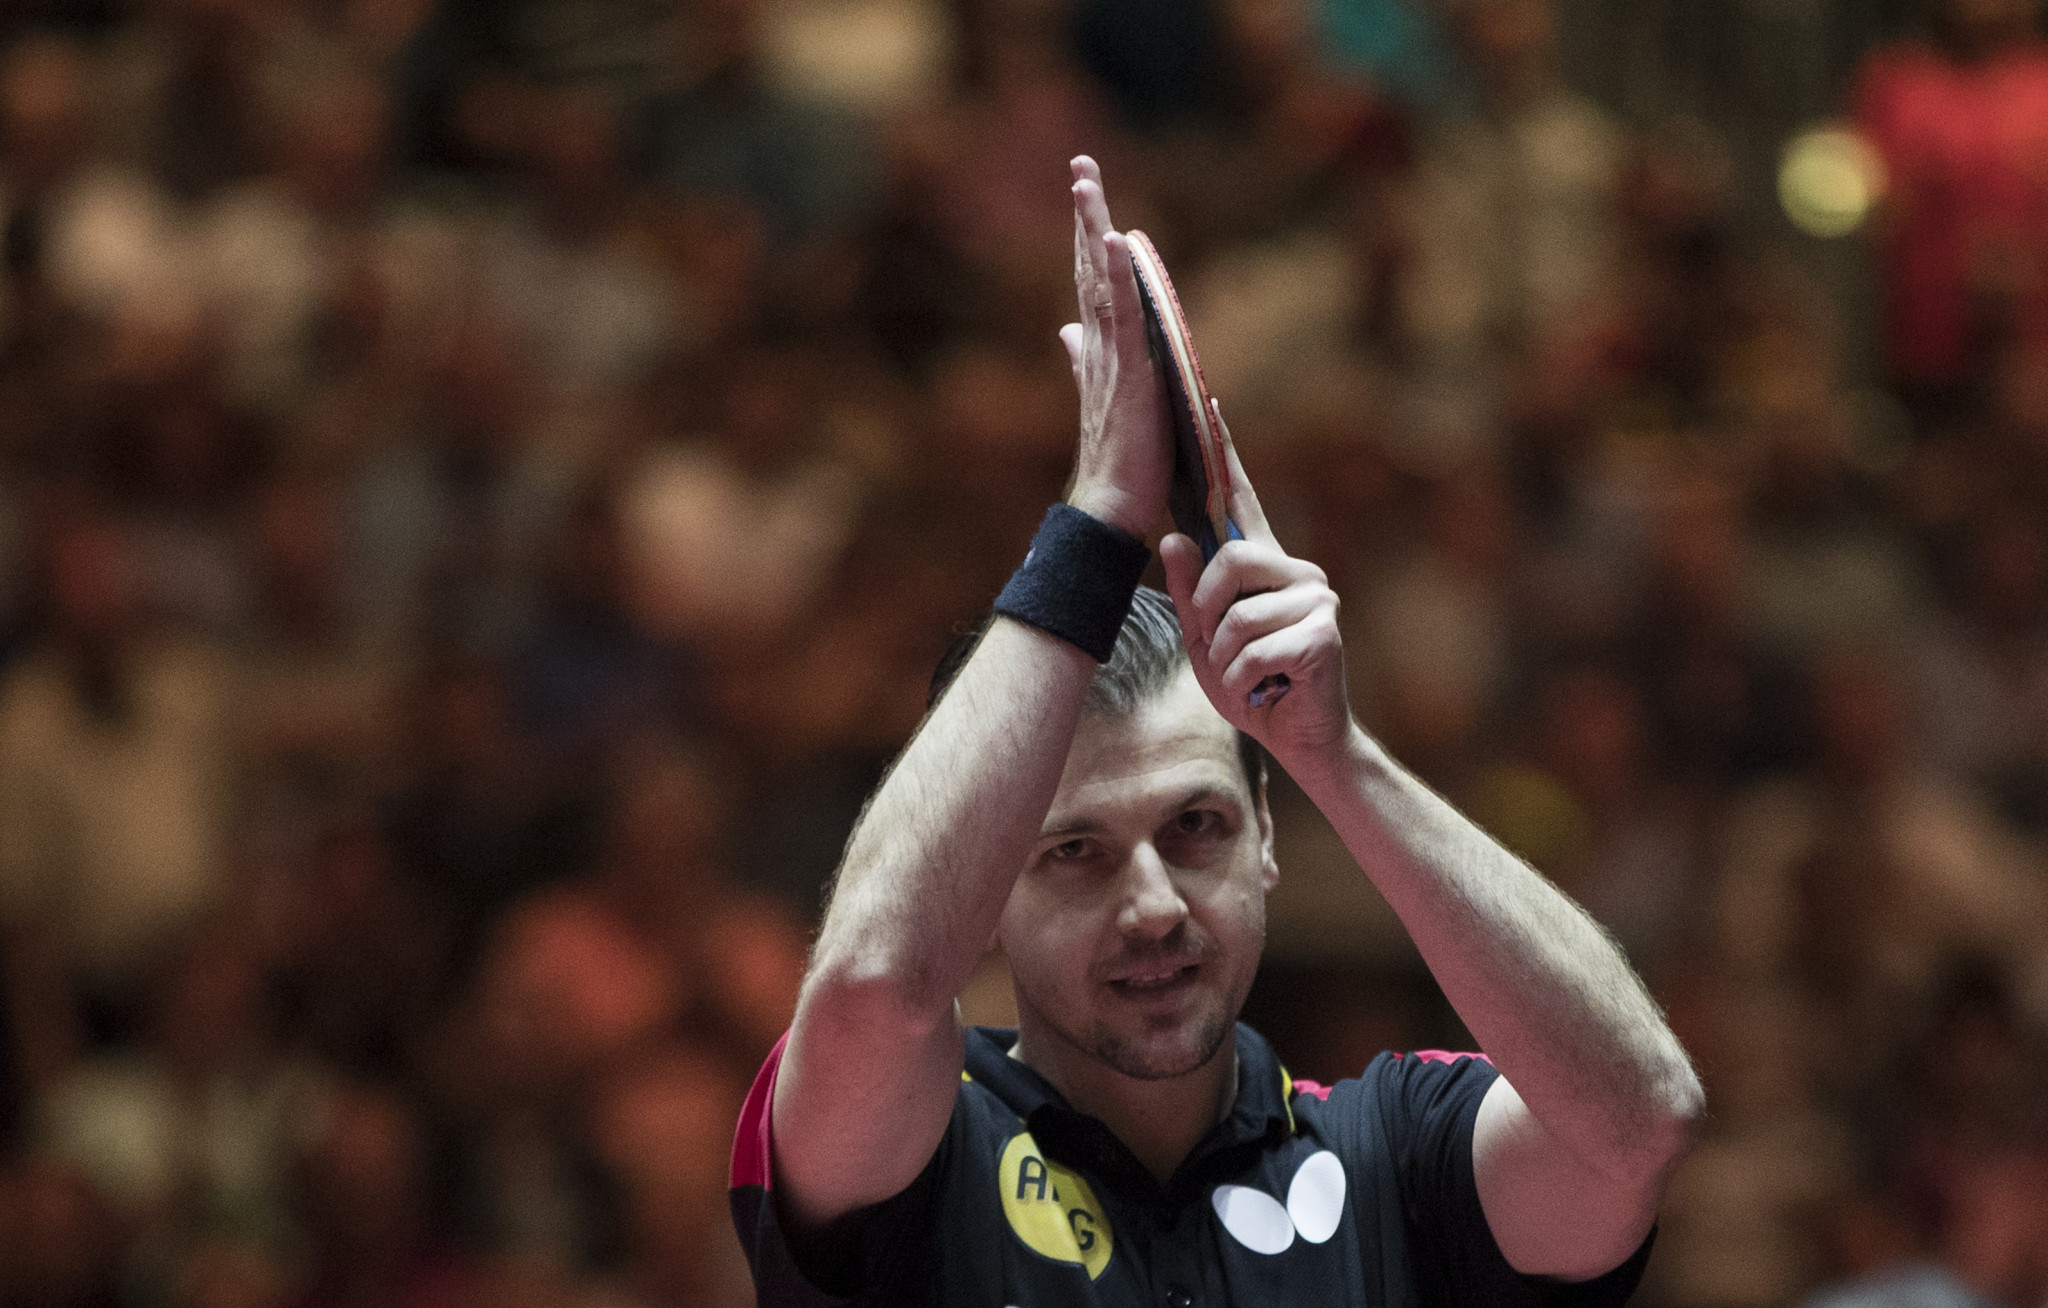 Boll to become oldest table tennis world number one